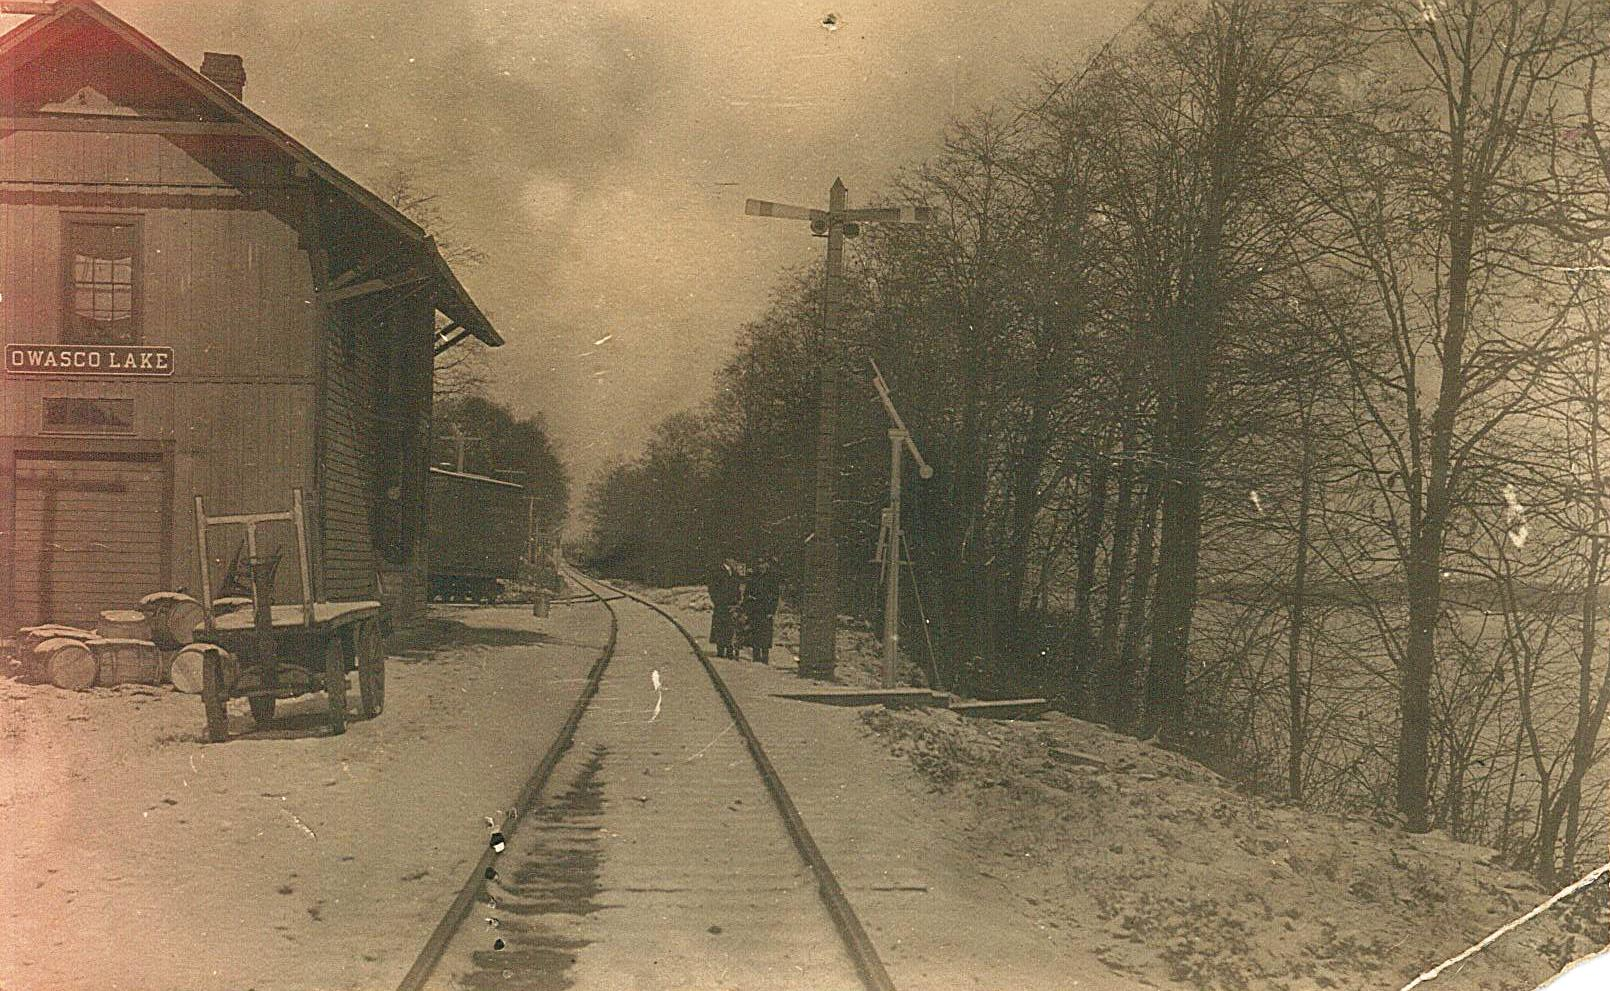 Wycoffs, N.Y. Later renamed Owasco Lake Station, N.Y.